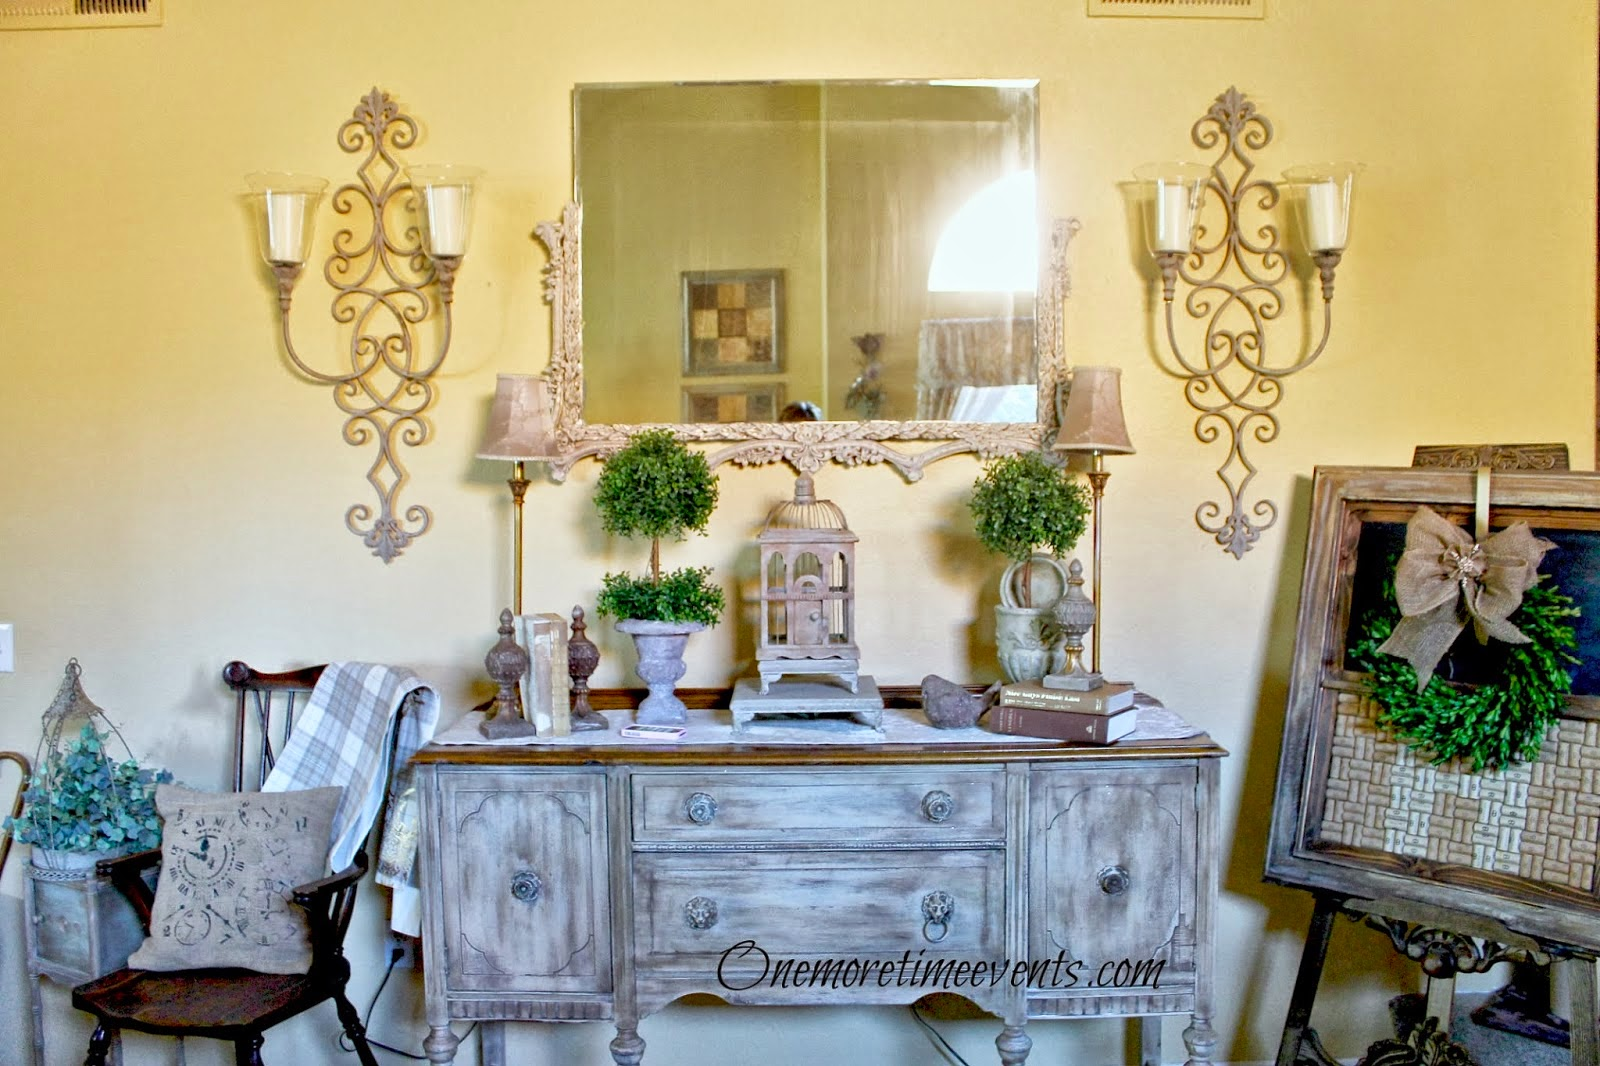 Rustic look on Buffet at One More Time Events.com